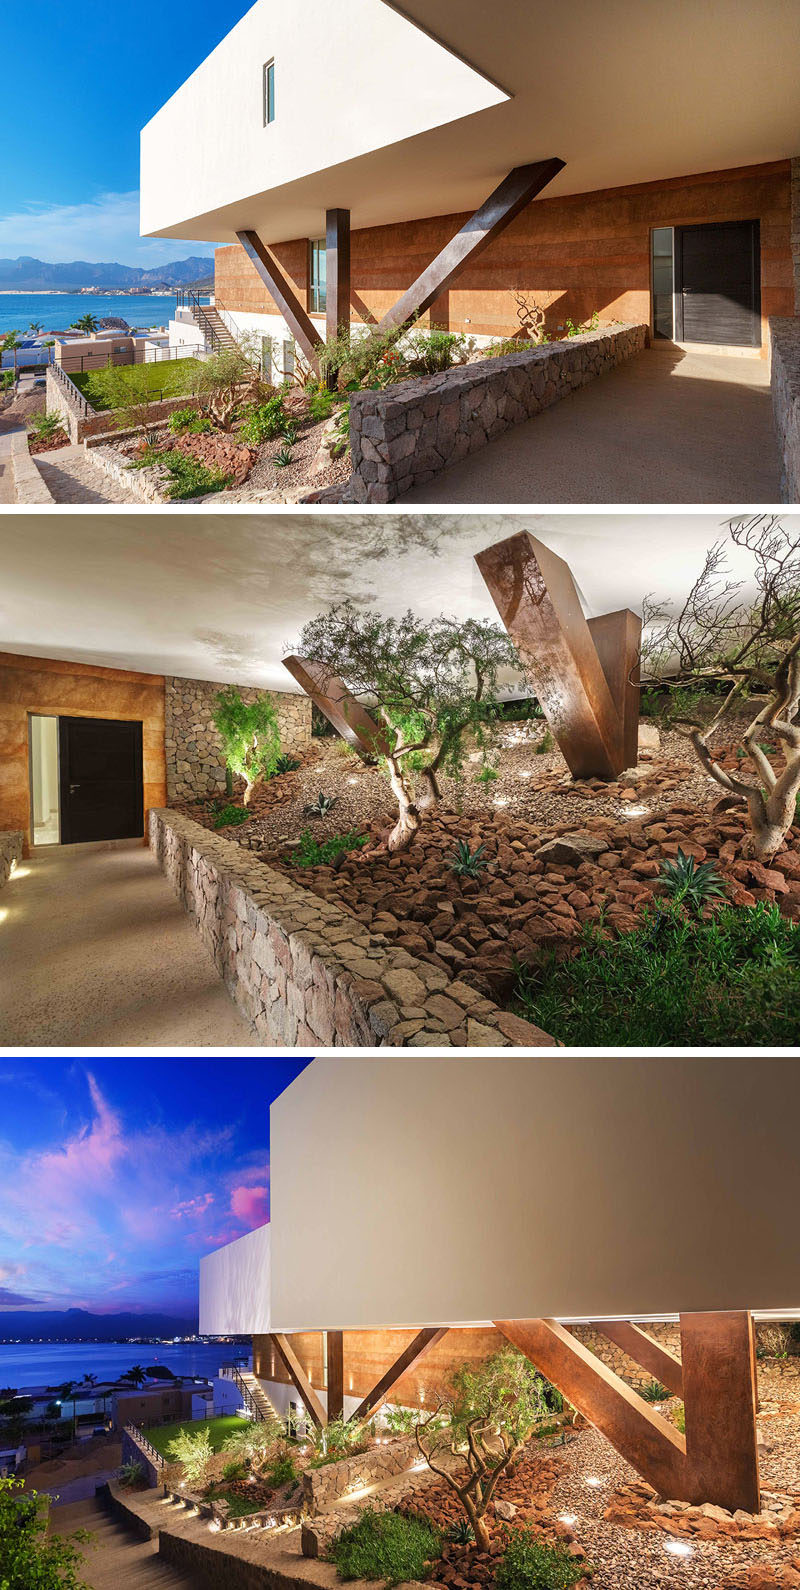 There are several different access points along a stone pathway to reach the backyard of this home.